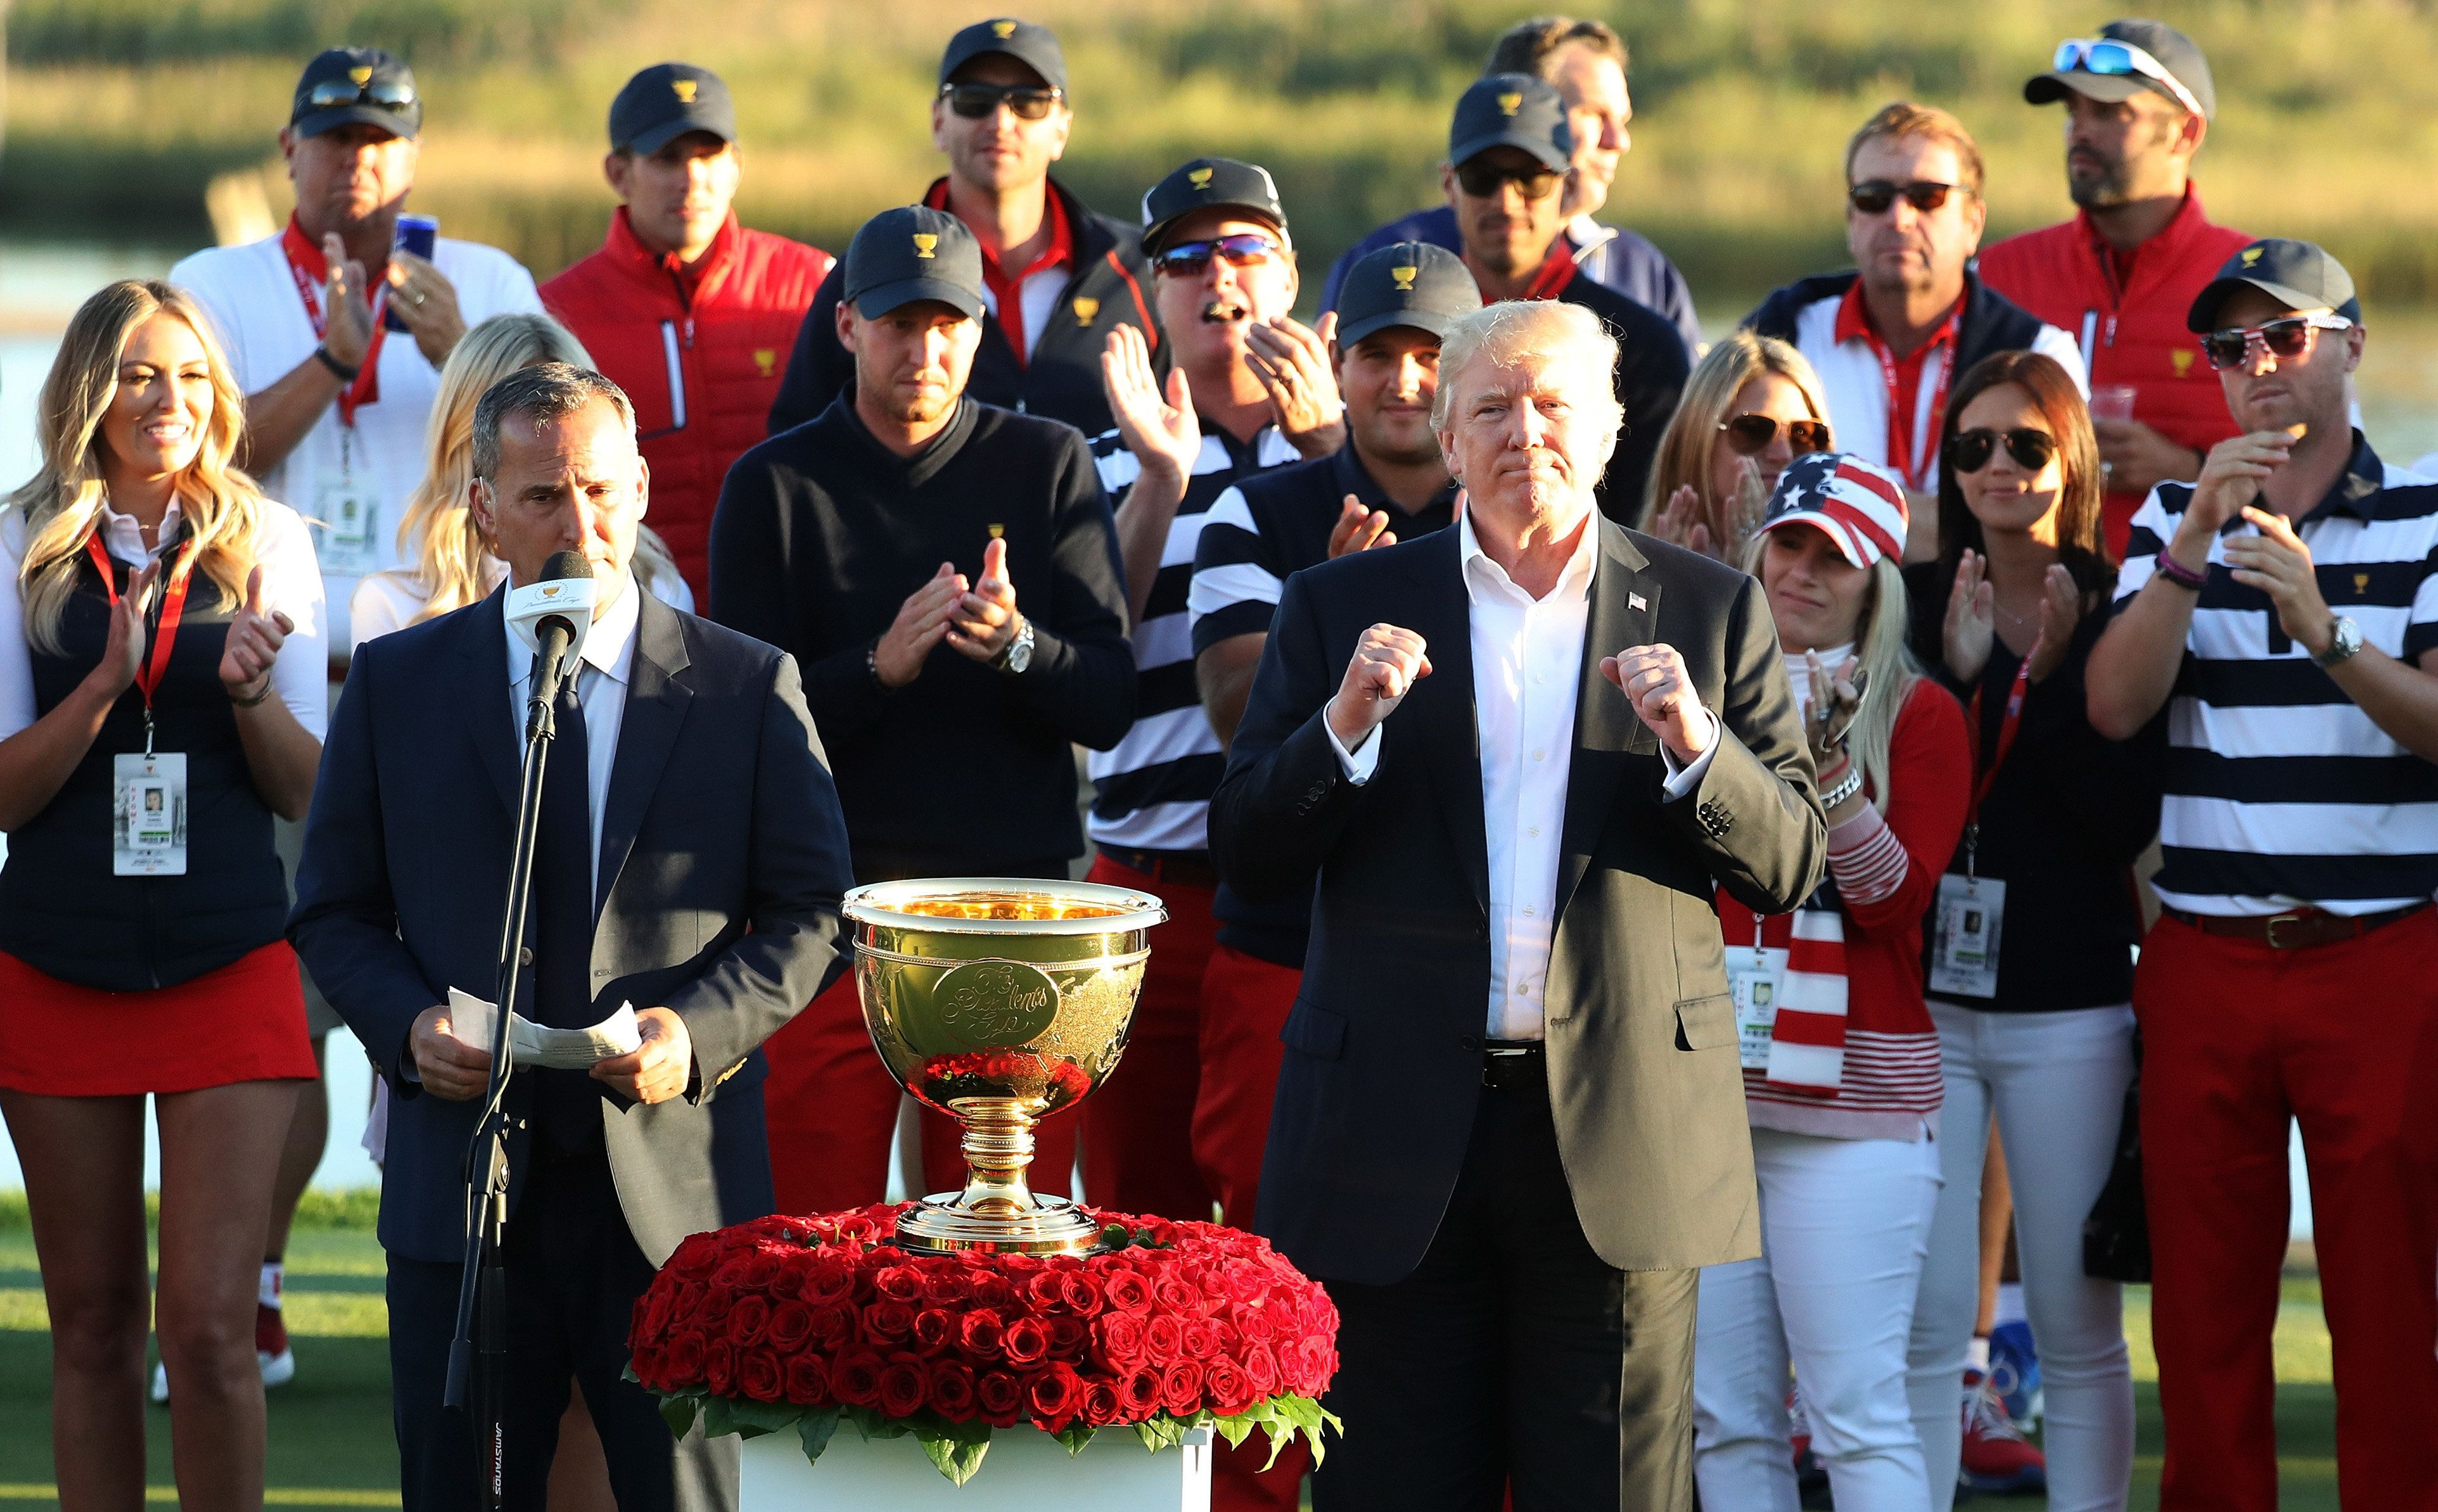 JERSEY CITY, NJ - OCTOBER 01:  U.S. President Donald Trump presents the U.S. Team with the trophy after they defeated the International Team 19 to 11 in the Presidents Cup at Liberty National Golf Club on October 1, 2017 in Jersey City, New Jersey.  (Photo by Rob Carr/Getty Images)